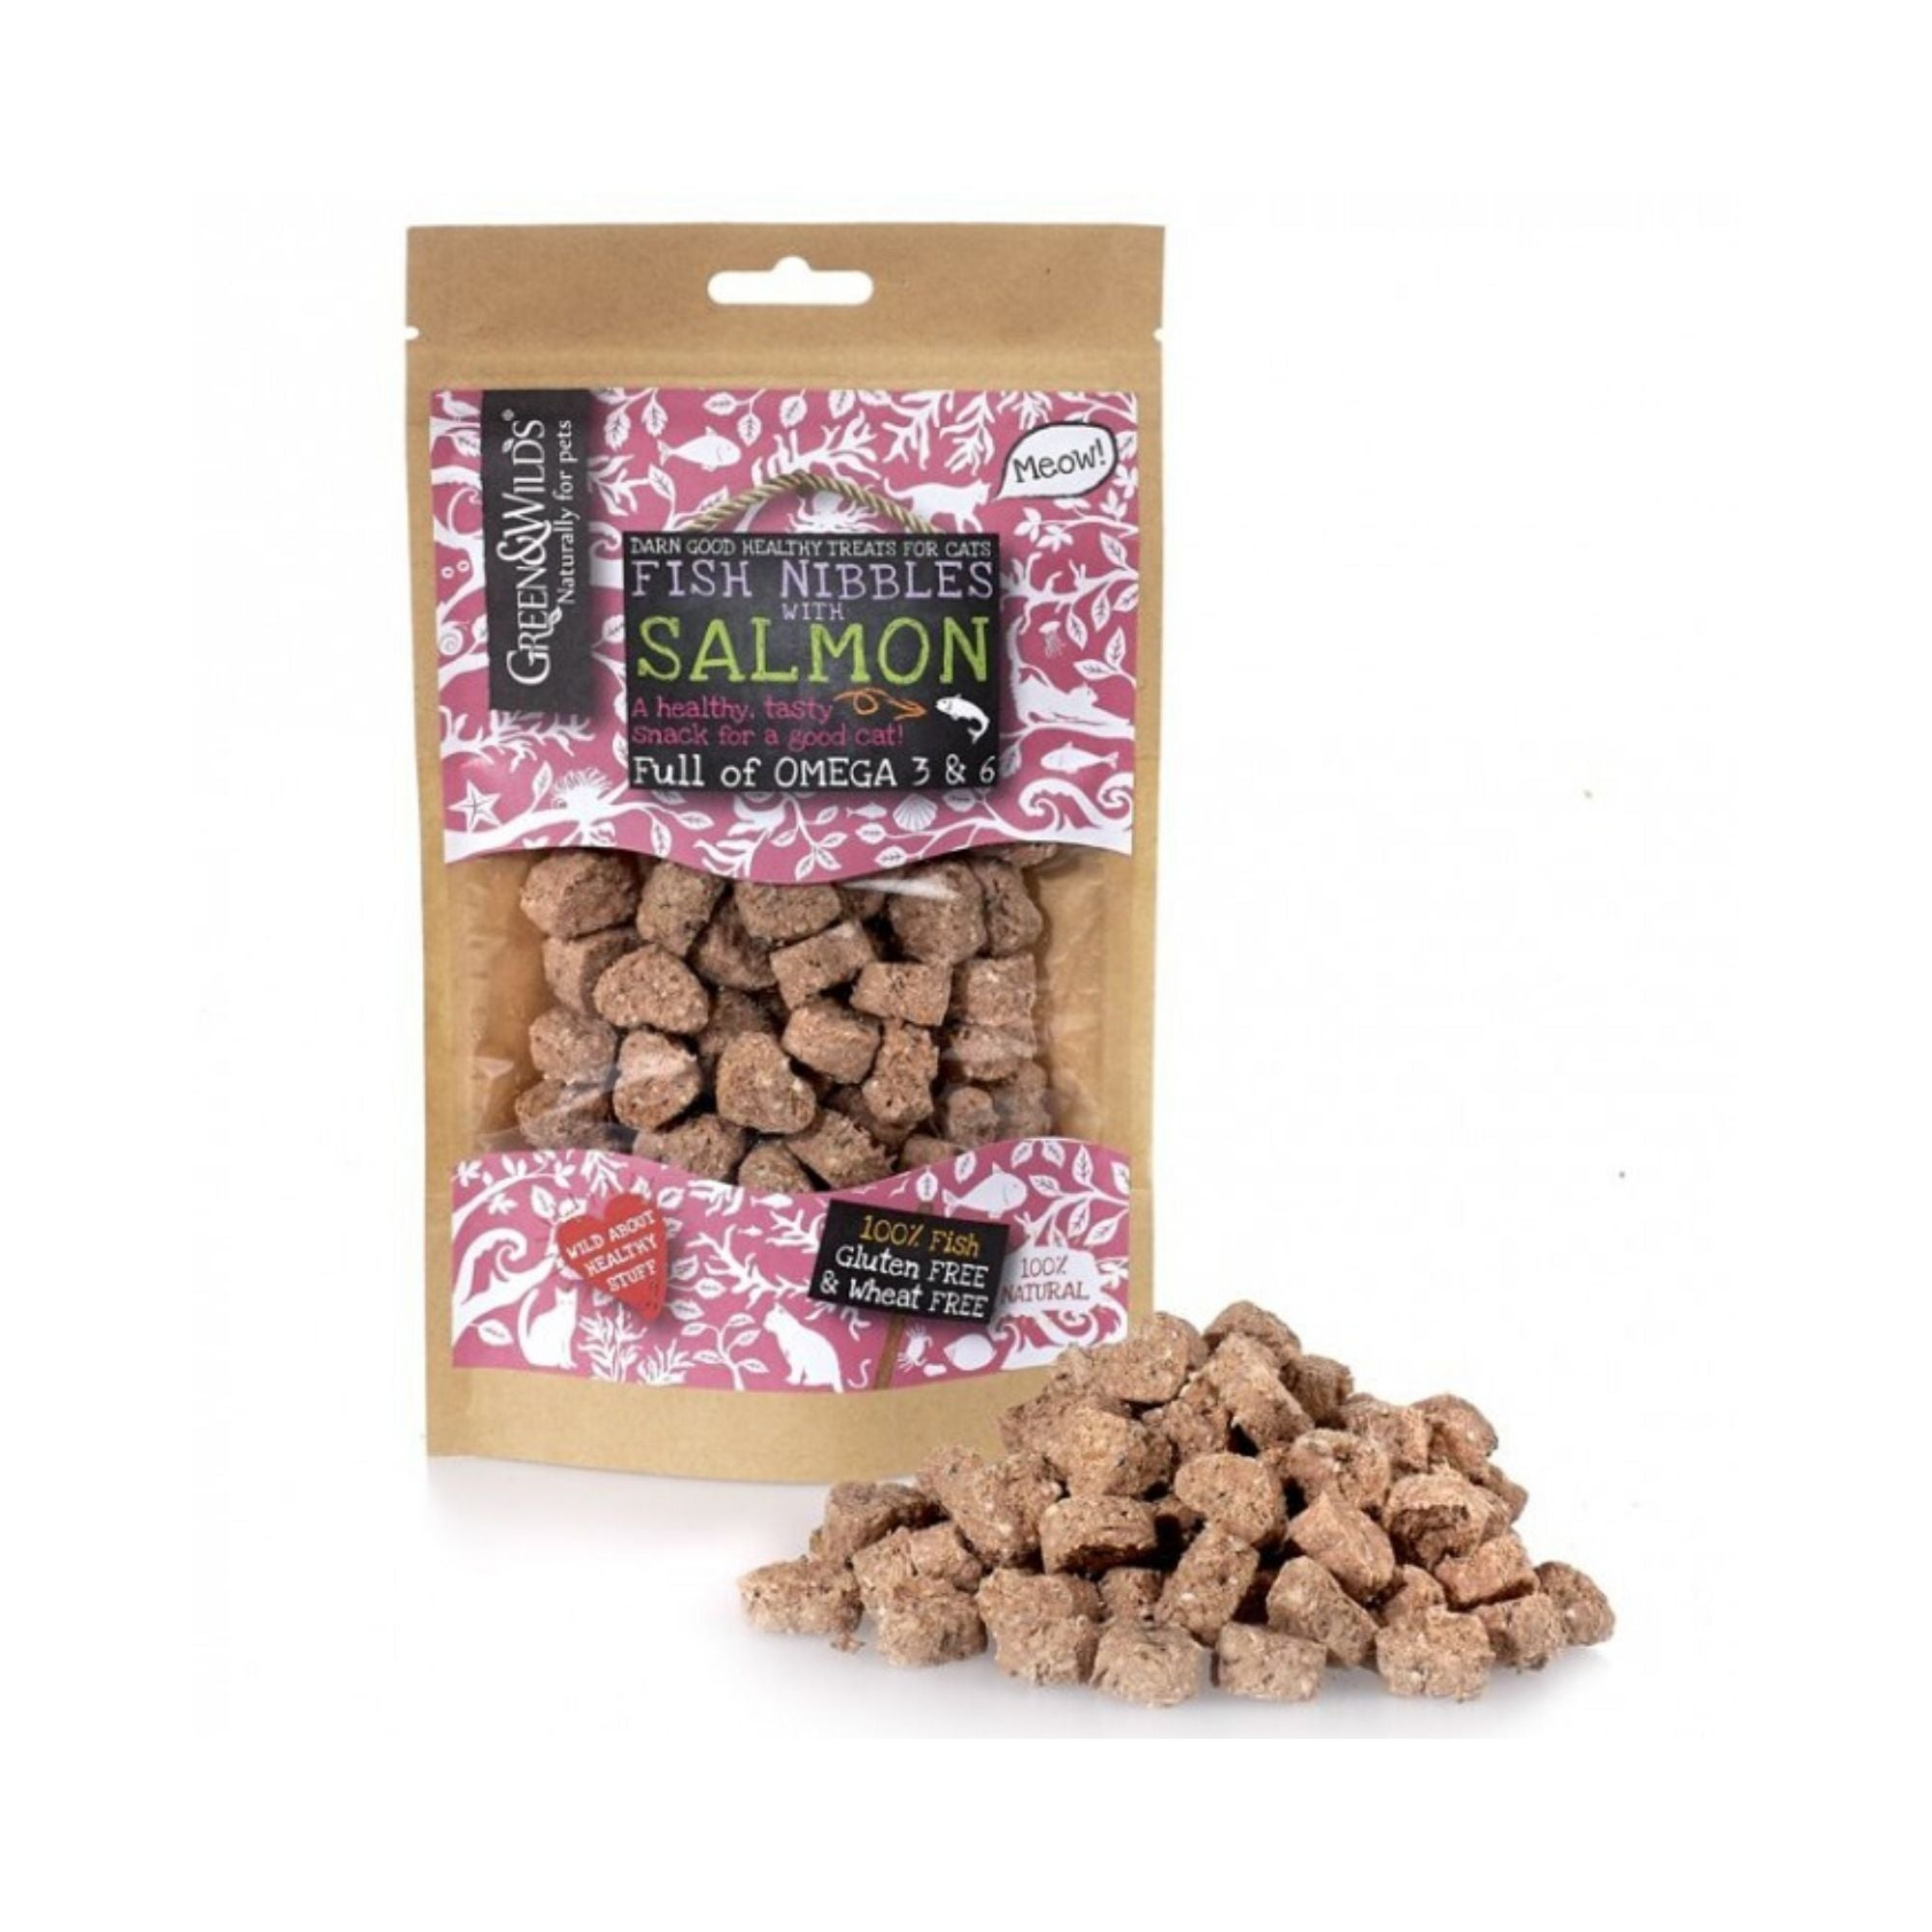 Green & Wilds Fish Nibbles with Salmon for Cats, Cat Treats | Barks & Bunnies